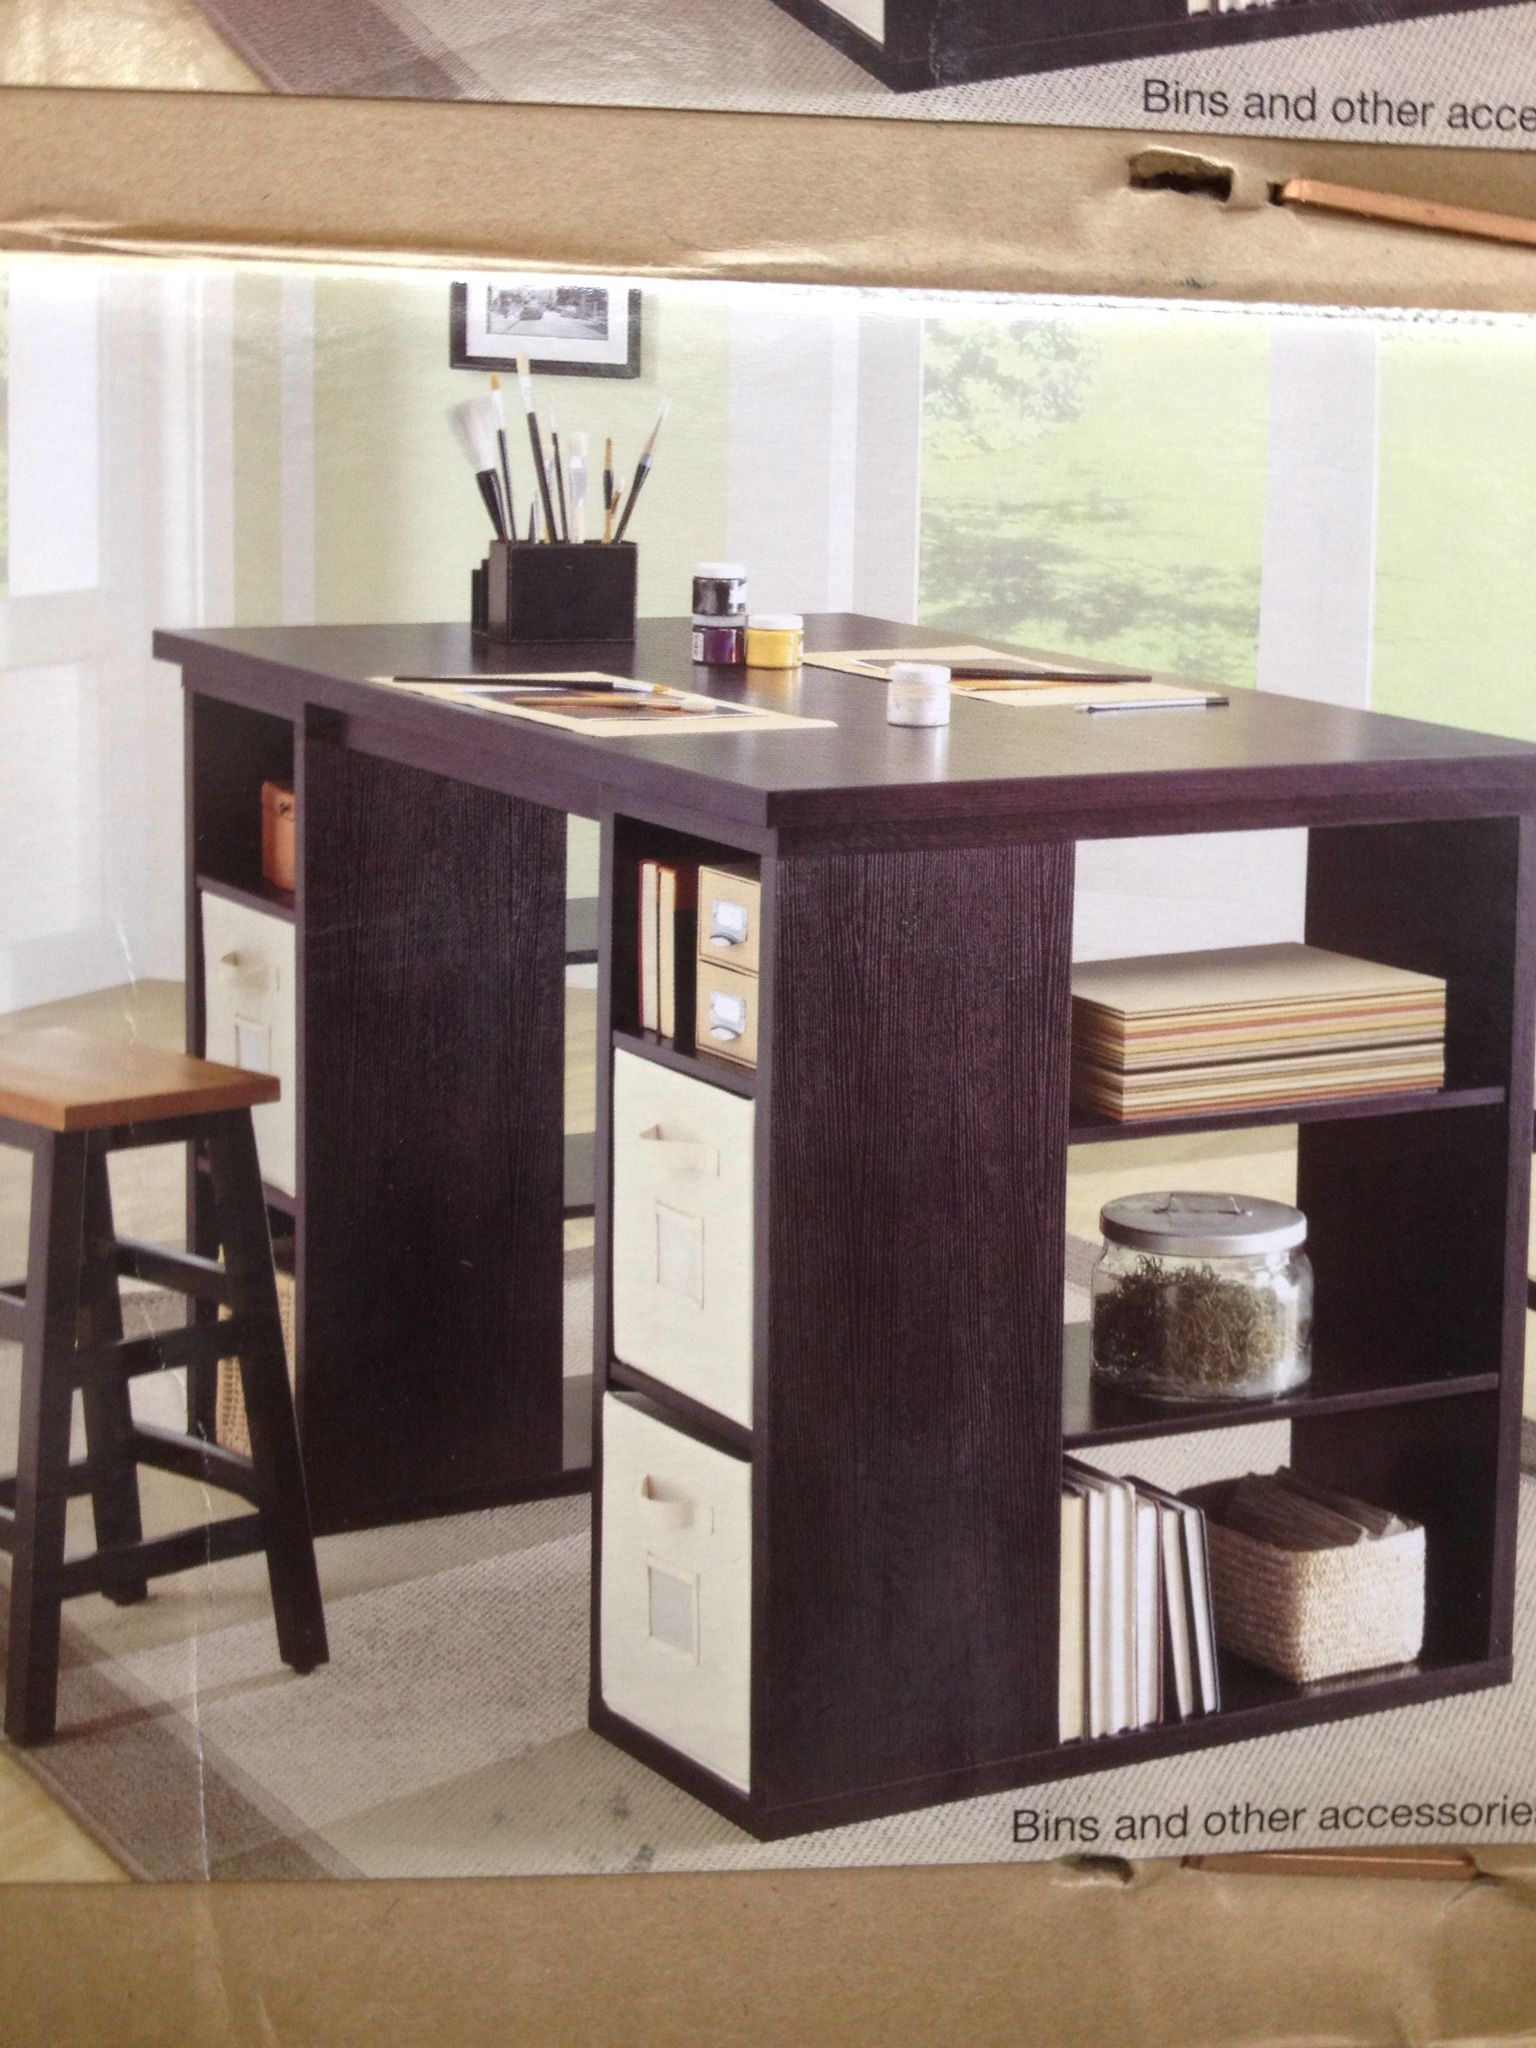 Under 200 At Costco And Sturdy Bayside Furnishings Project Table Craft Room Decor